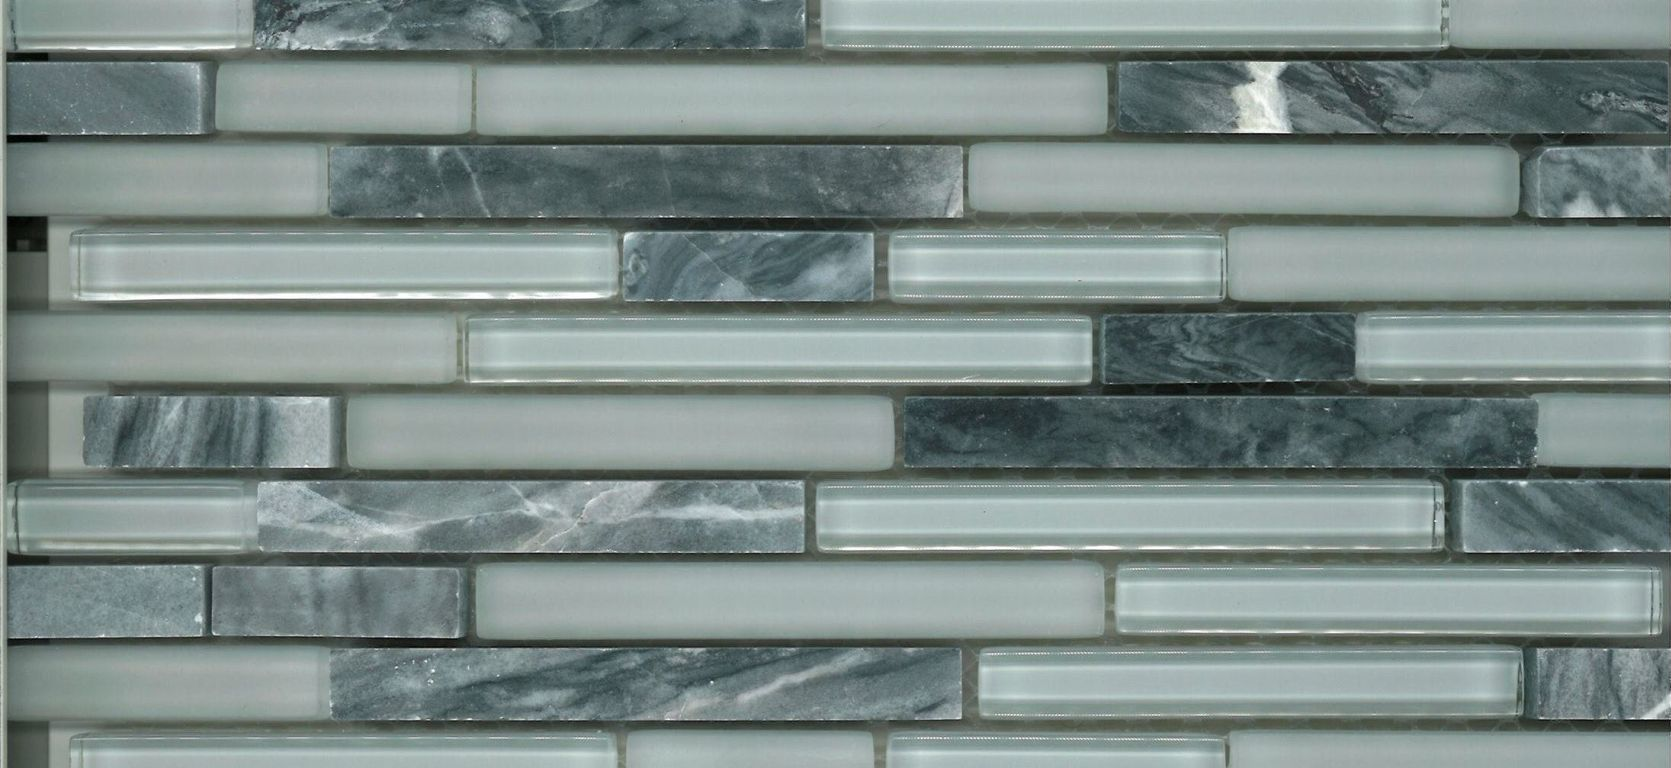 Ceramic Tile Showers   R-Anell Homes